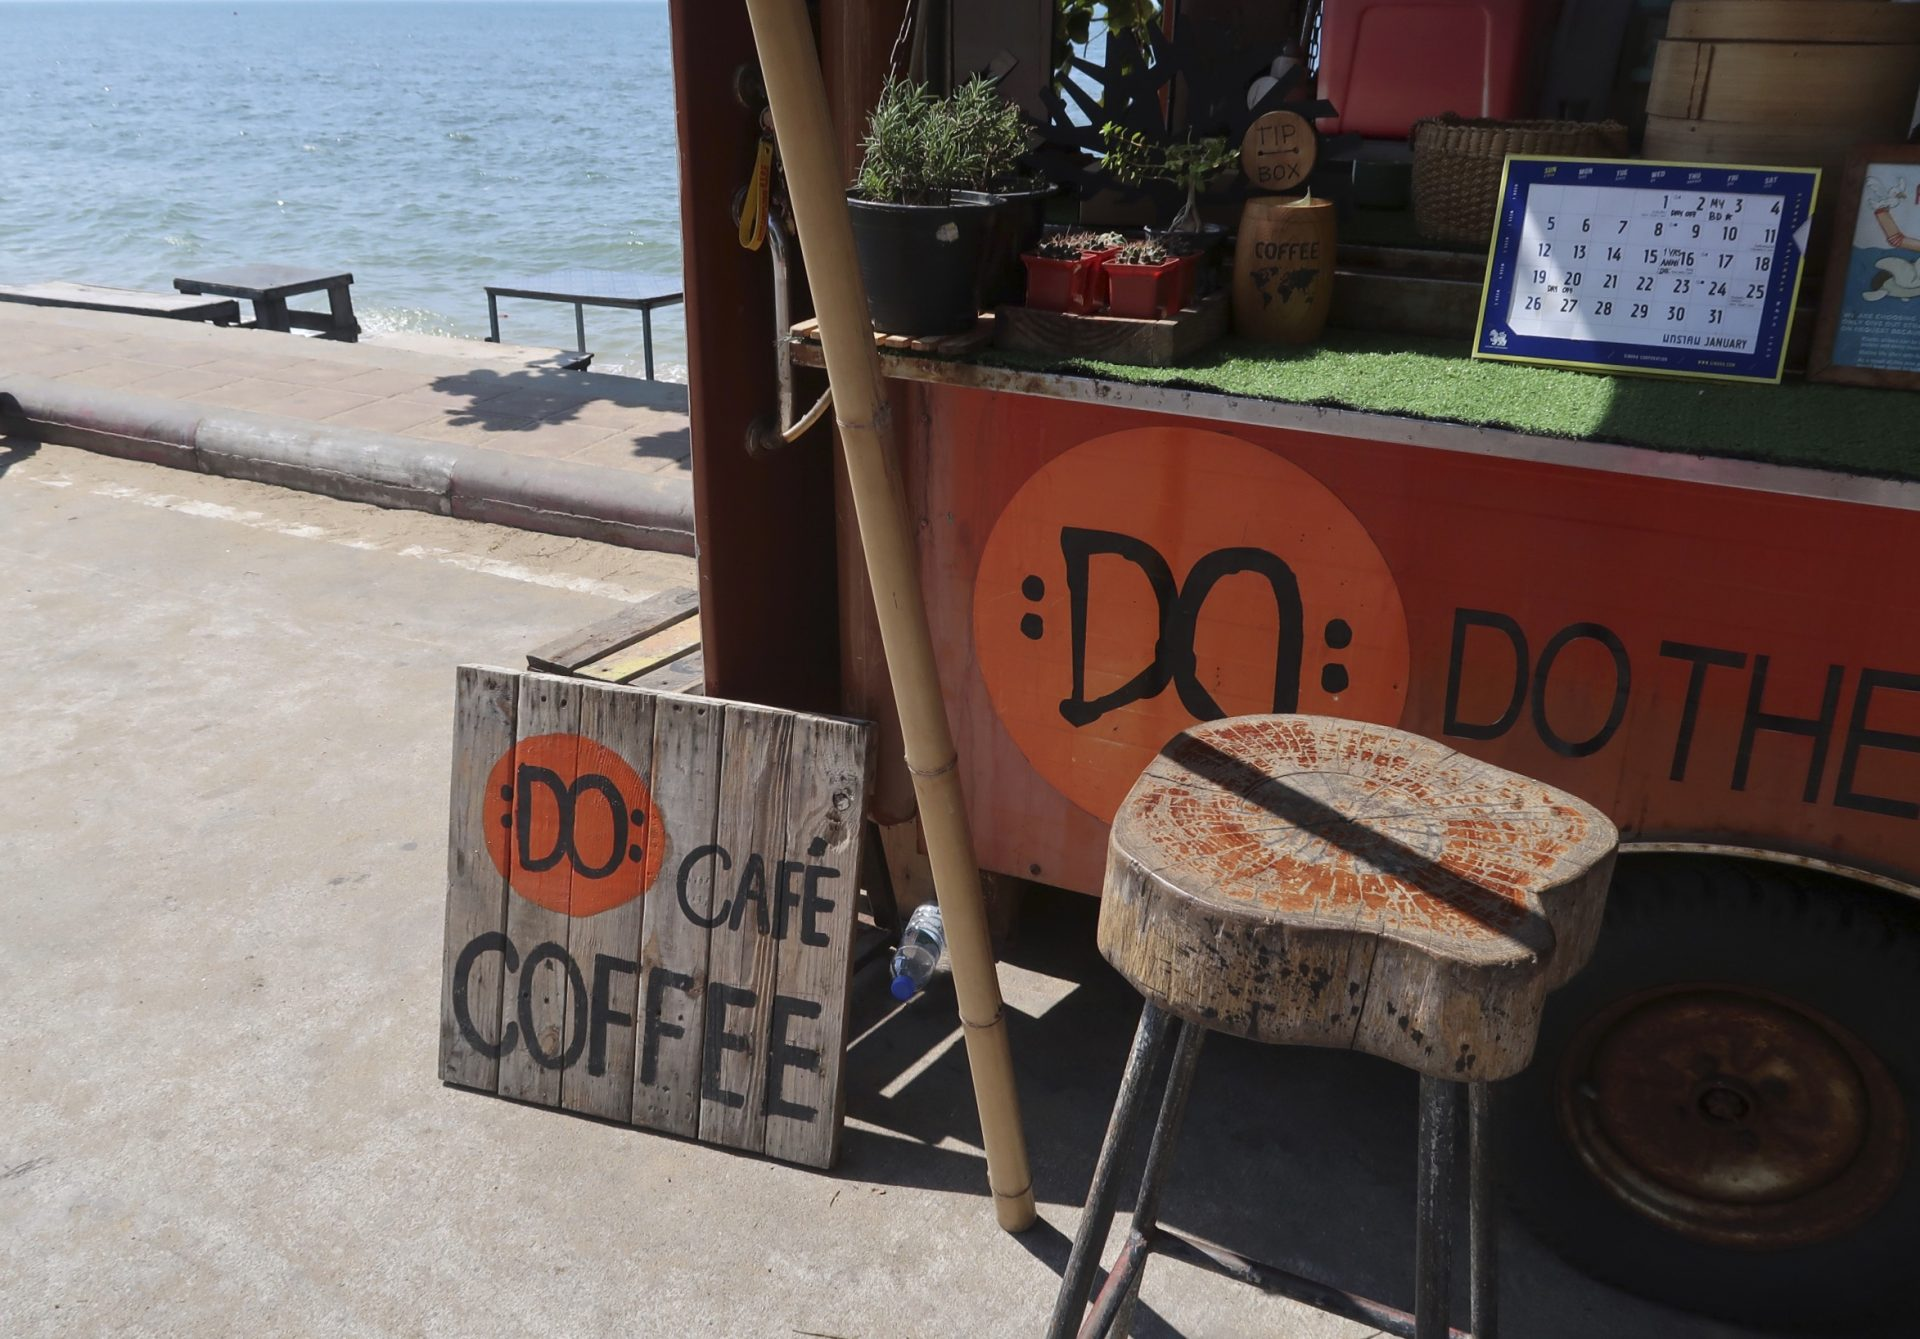 Do Cafe Truck Cafe Pattaya